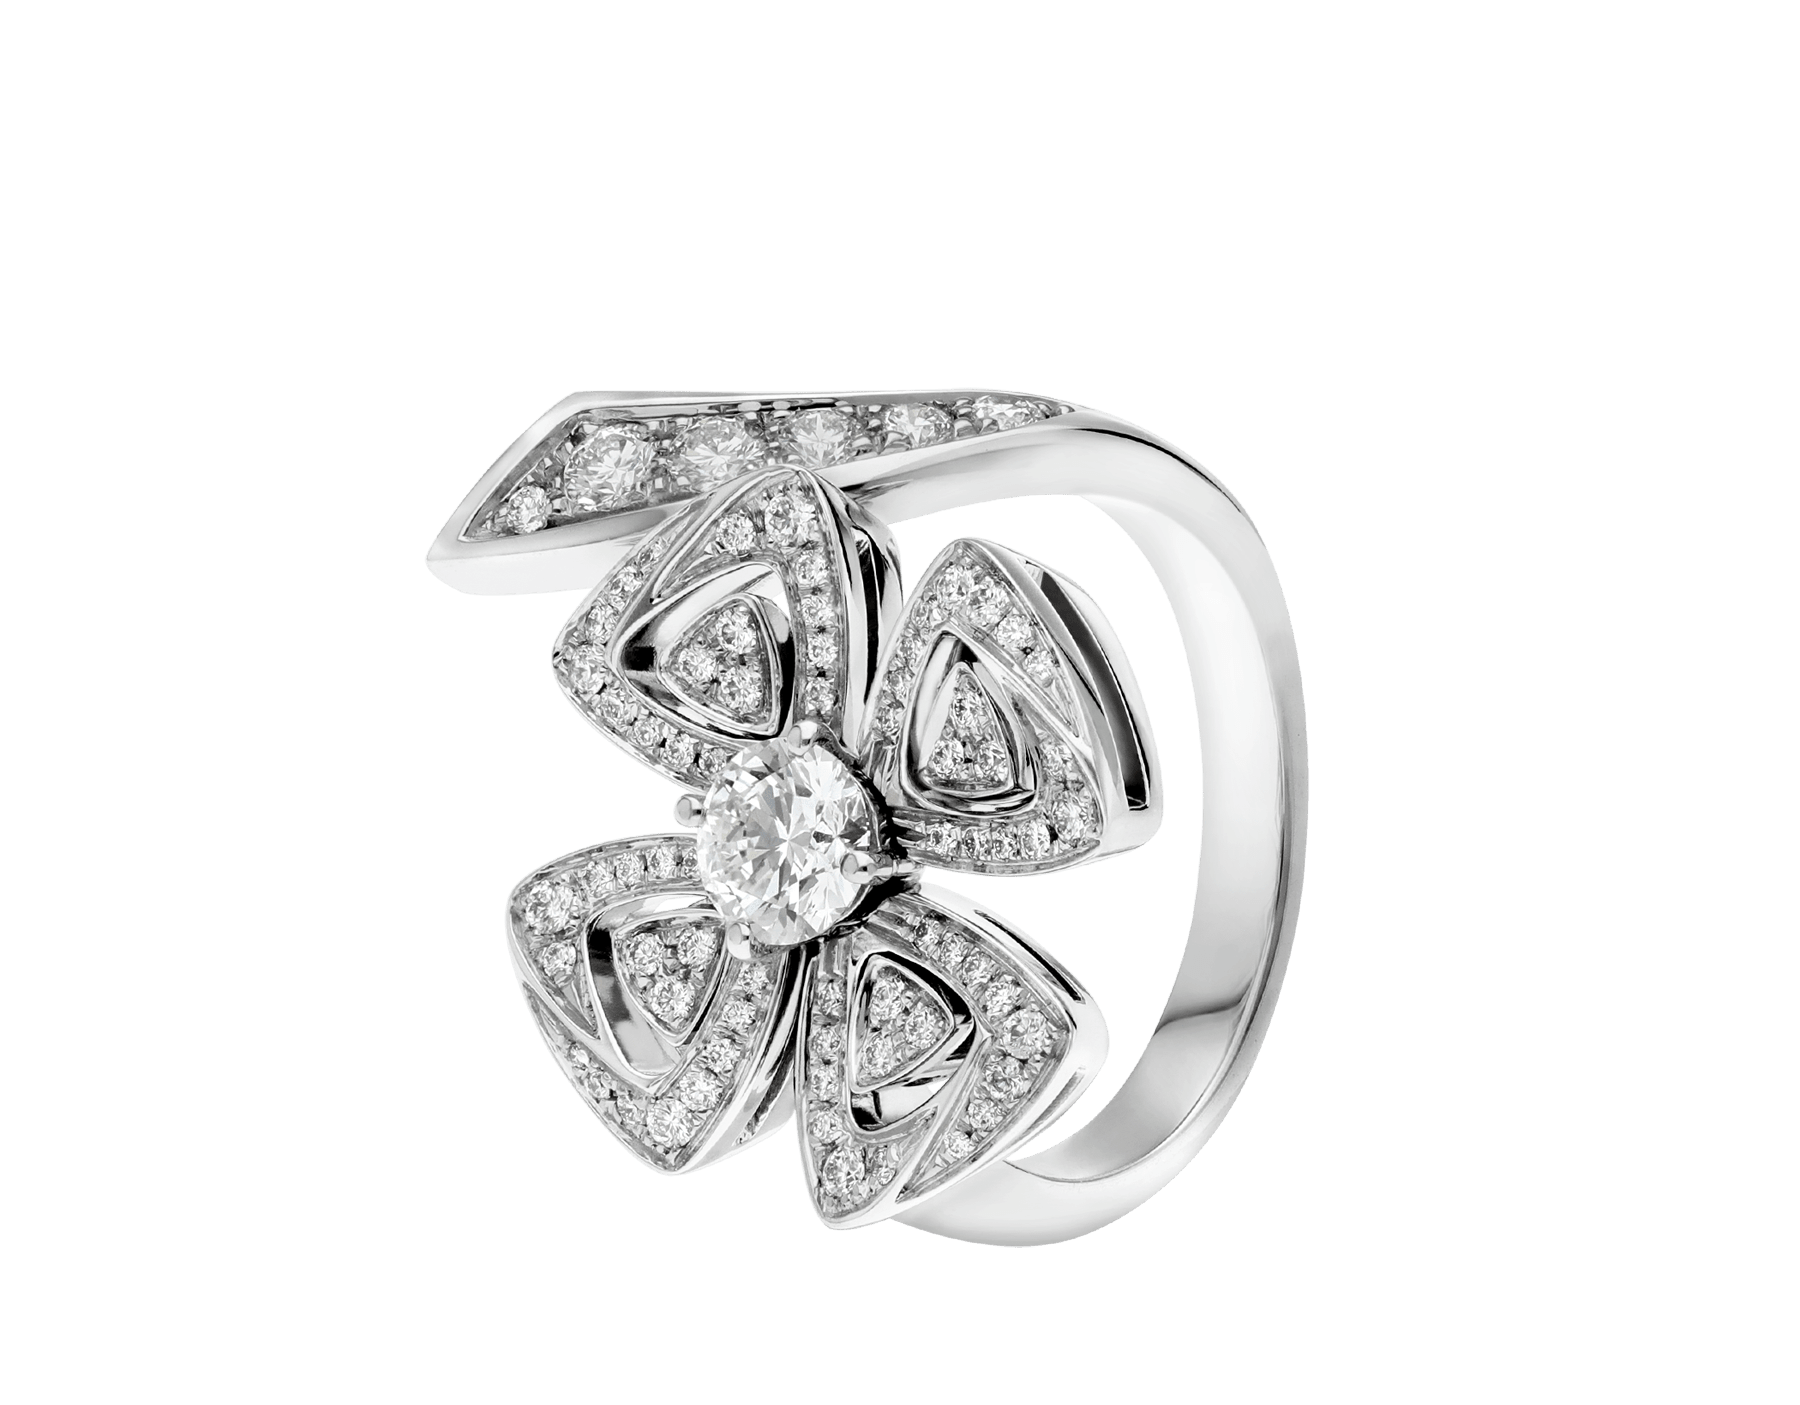 Fiorever 18 kt white gold ring set with a central round brilliant-cut diamond and pavé diamonds. AN858691 image 1